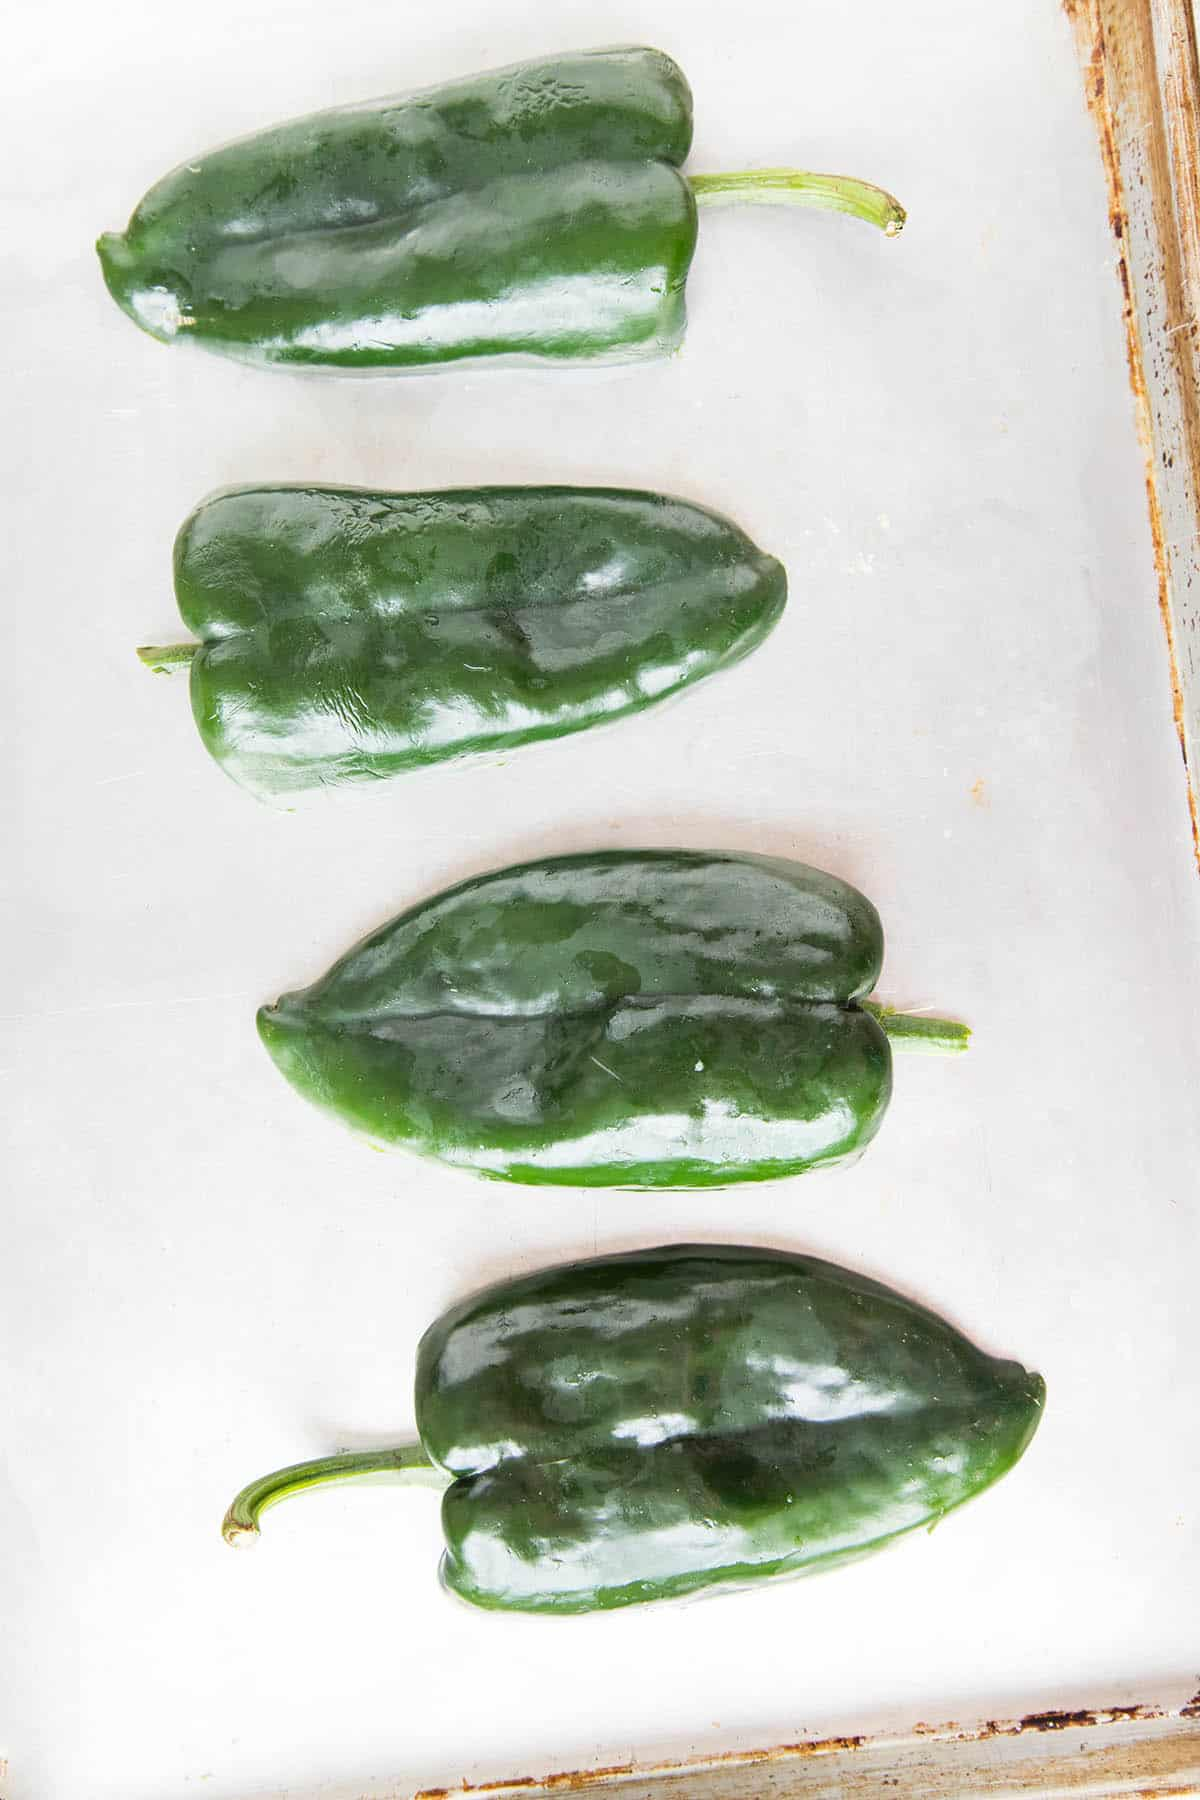 These Poblano Peppers are Ready for Roasting for Our Picadillo Stuffed Poblano Peppers Recipe